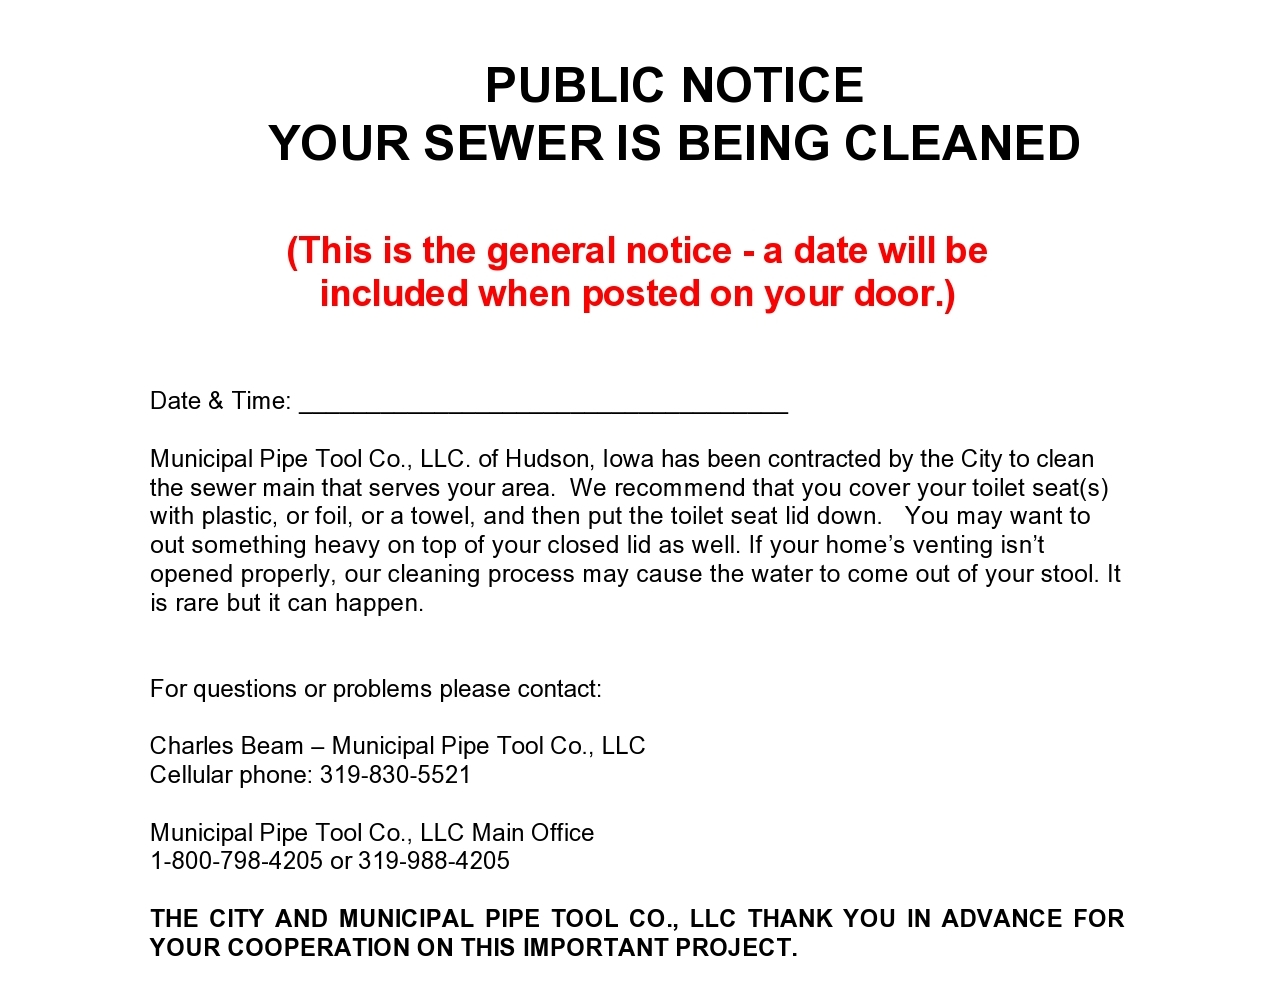 sanitary-sewer-cleaning-notice-page0001